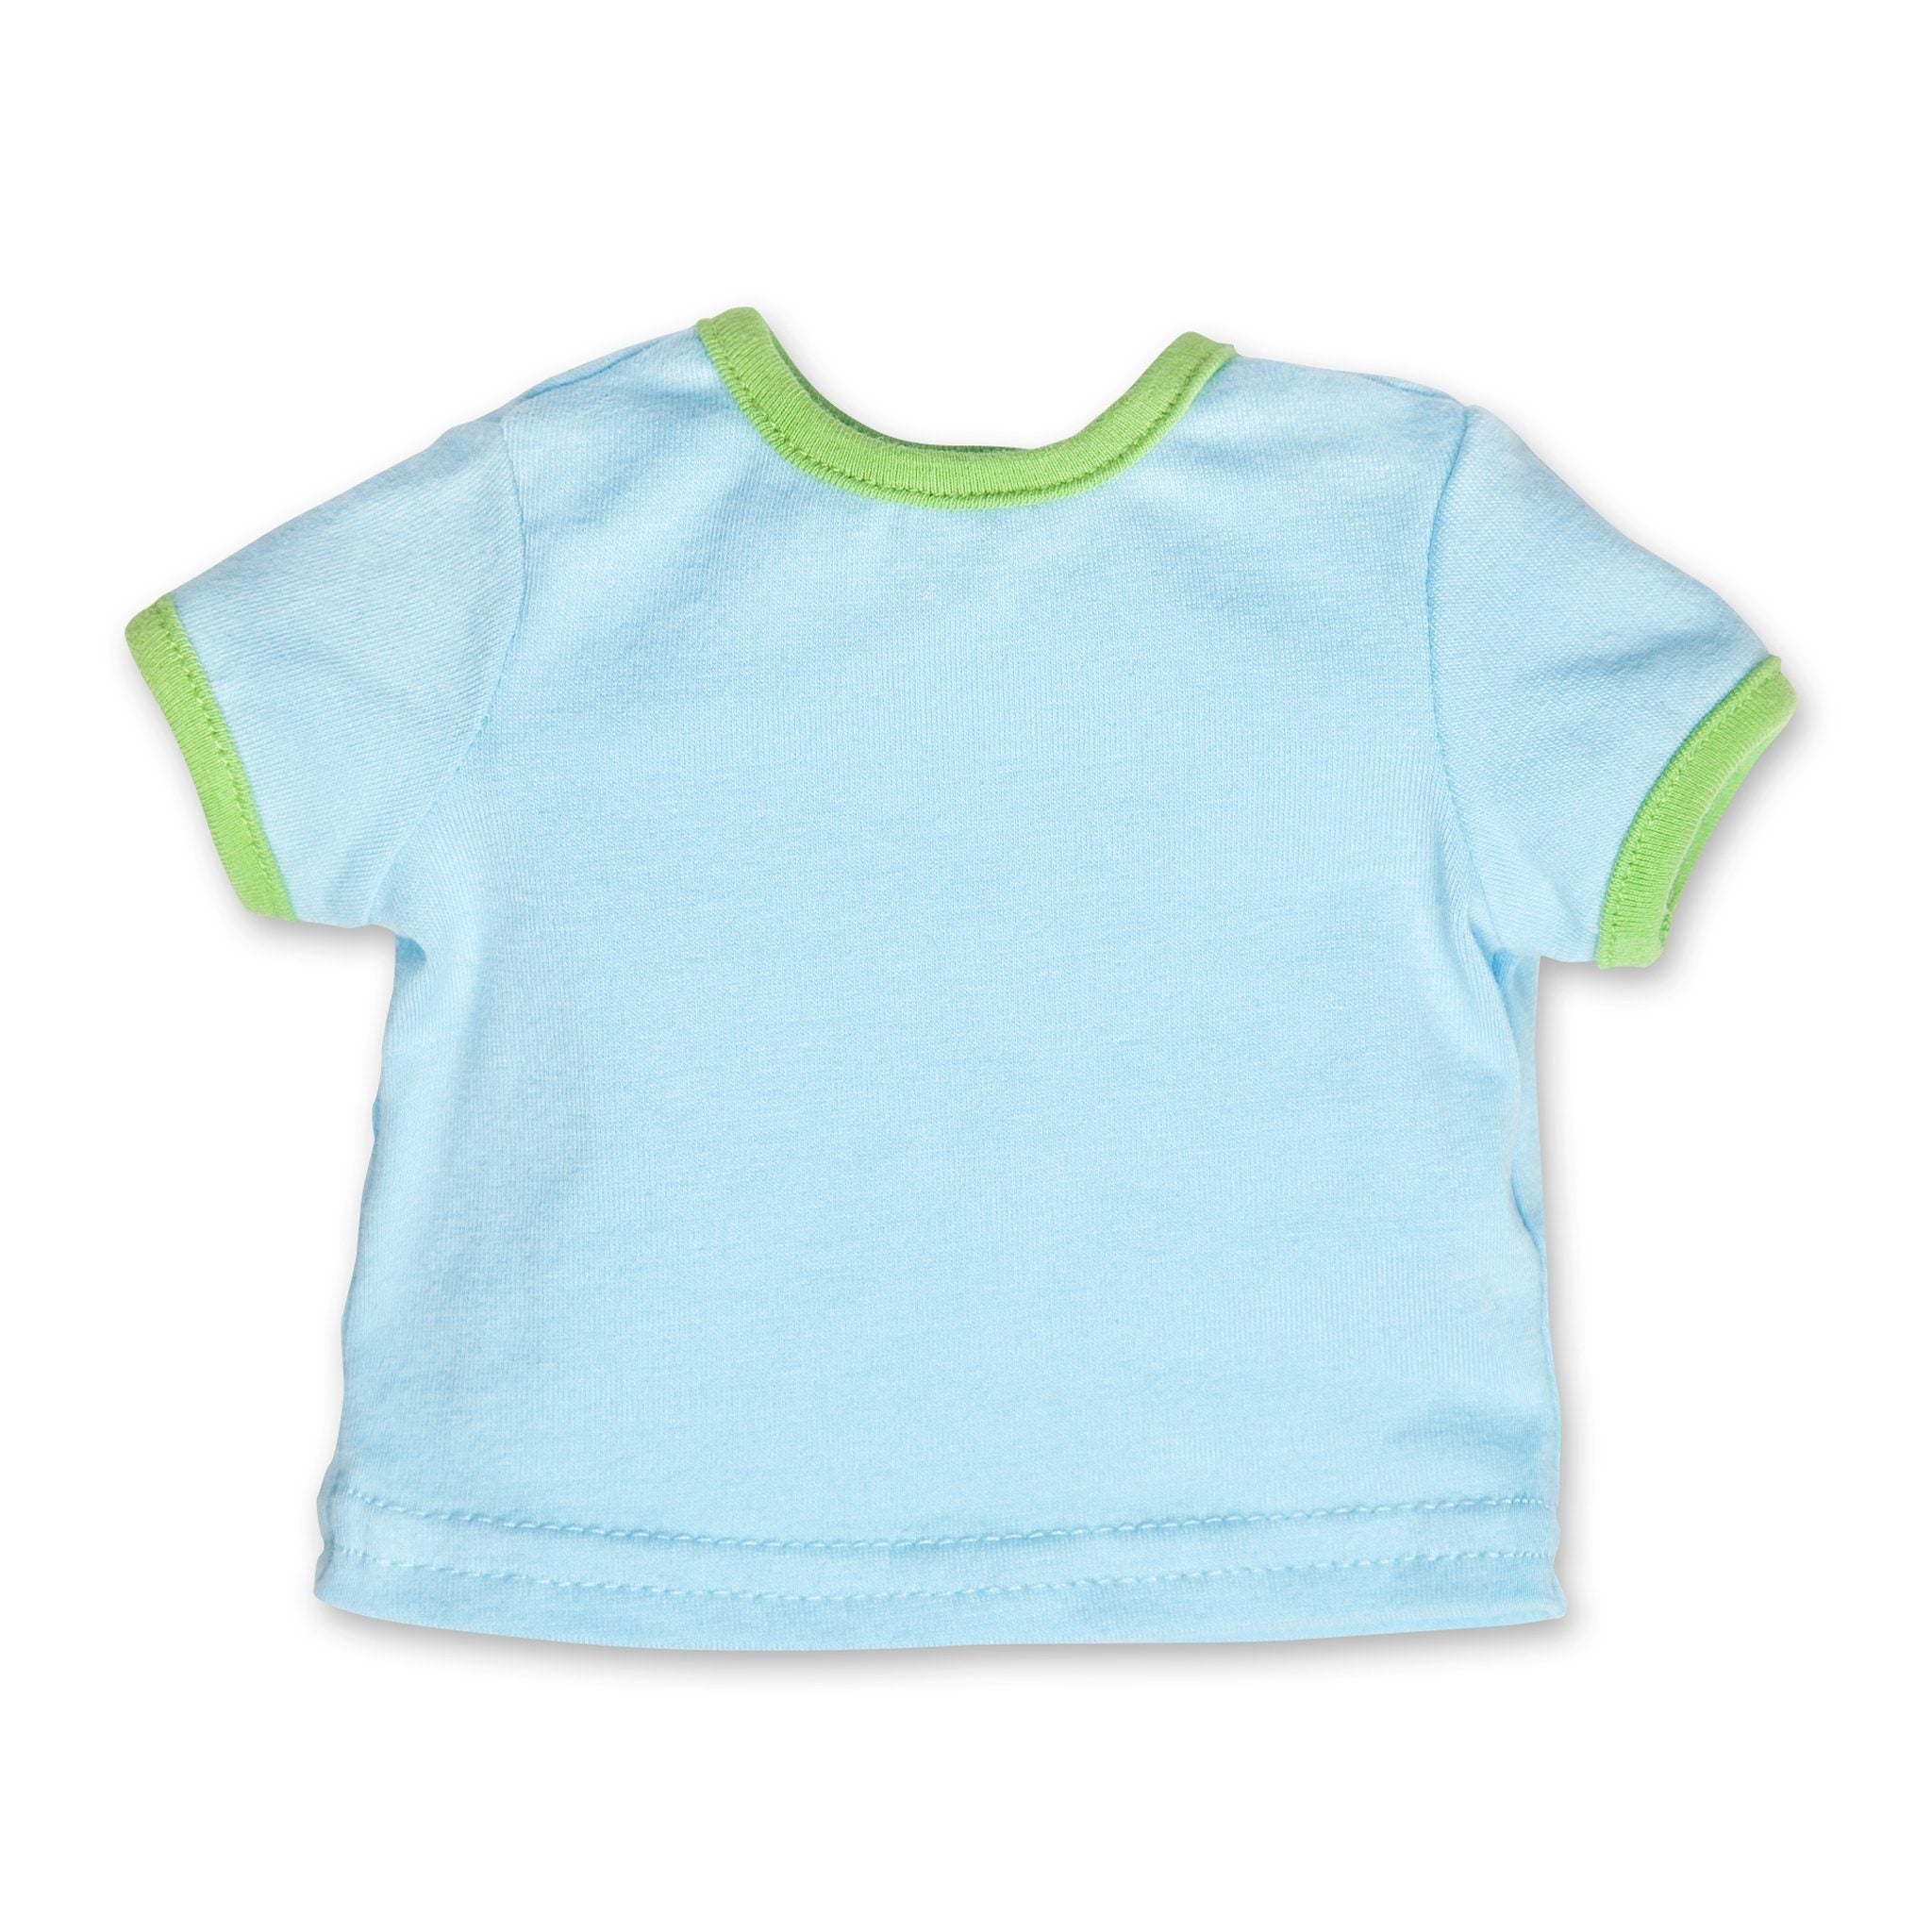 Outdoor Odyssey light blue ringer t-shirt with green accent fit all 18 inch dolls.